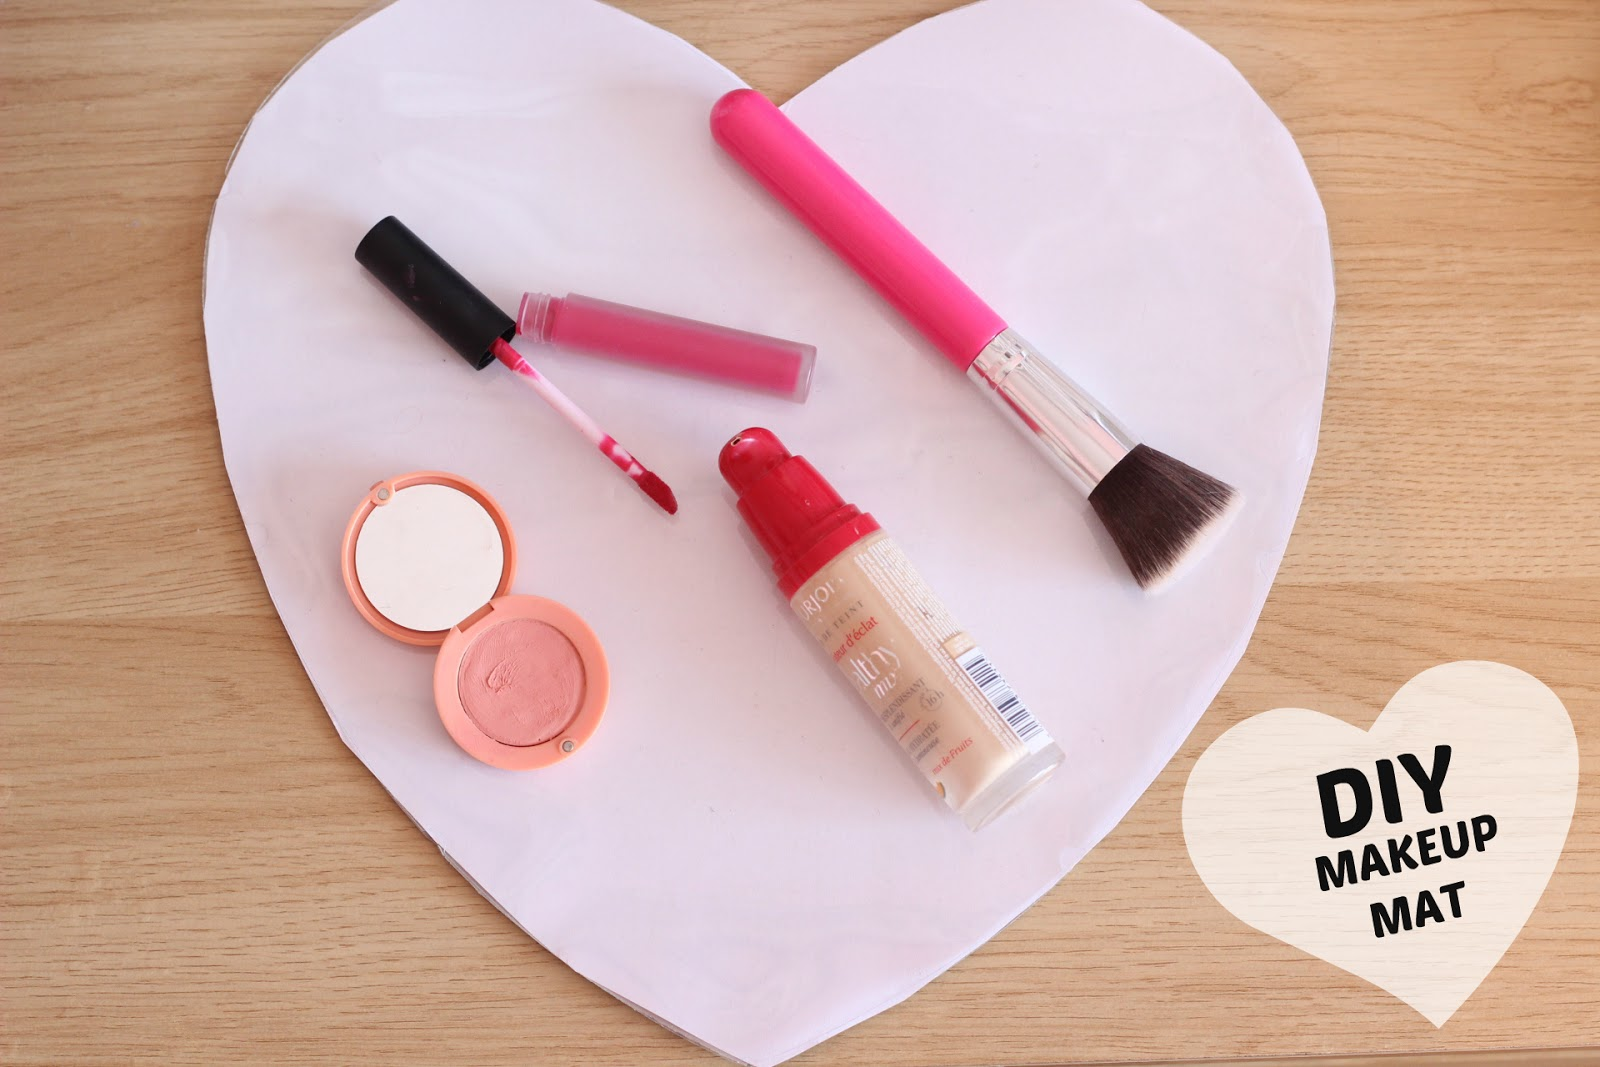 DIY Easy Clean Vanity Table Makeup Mat